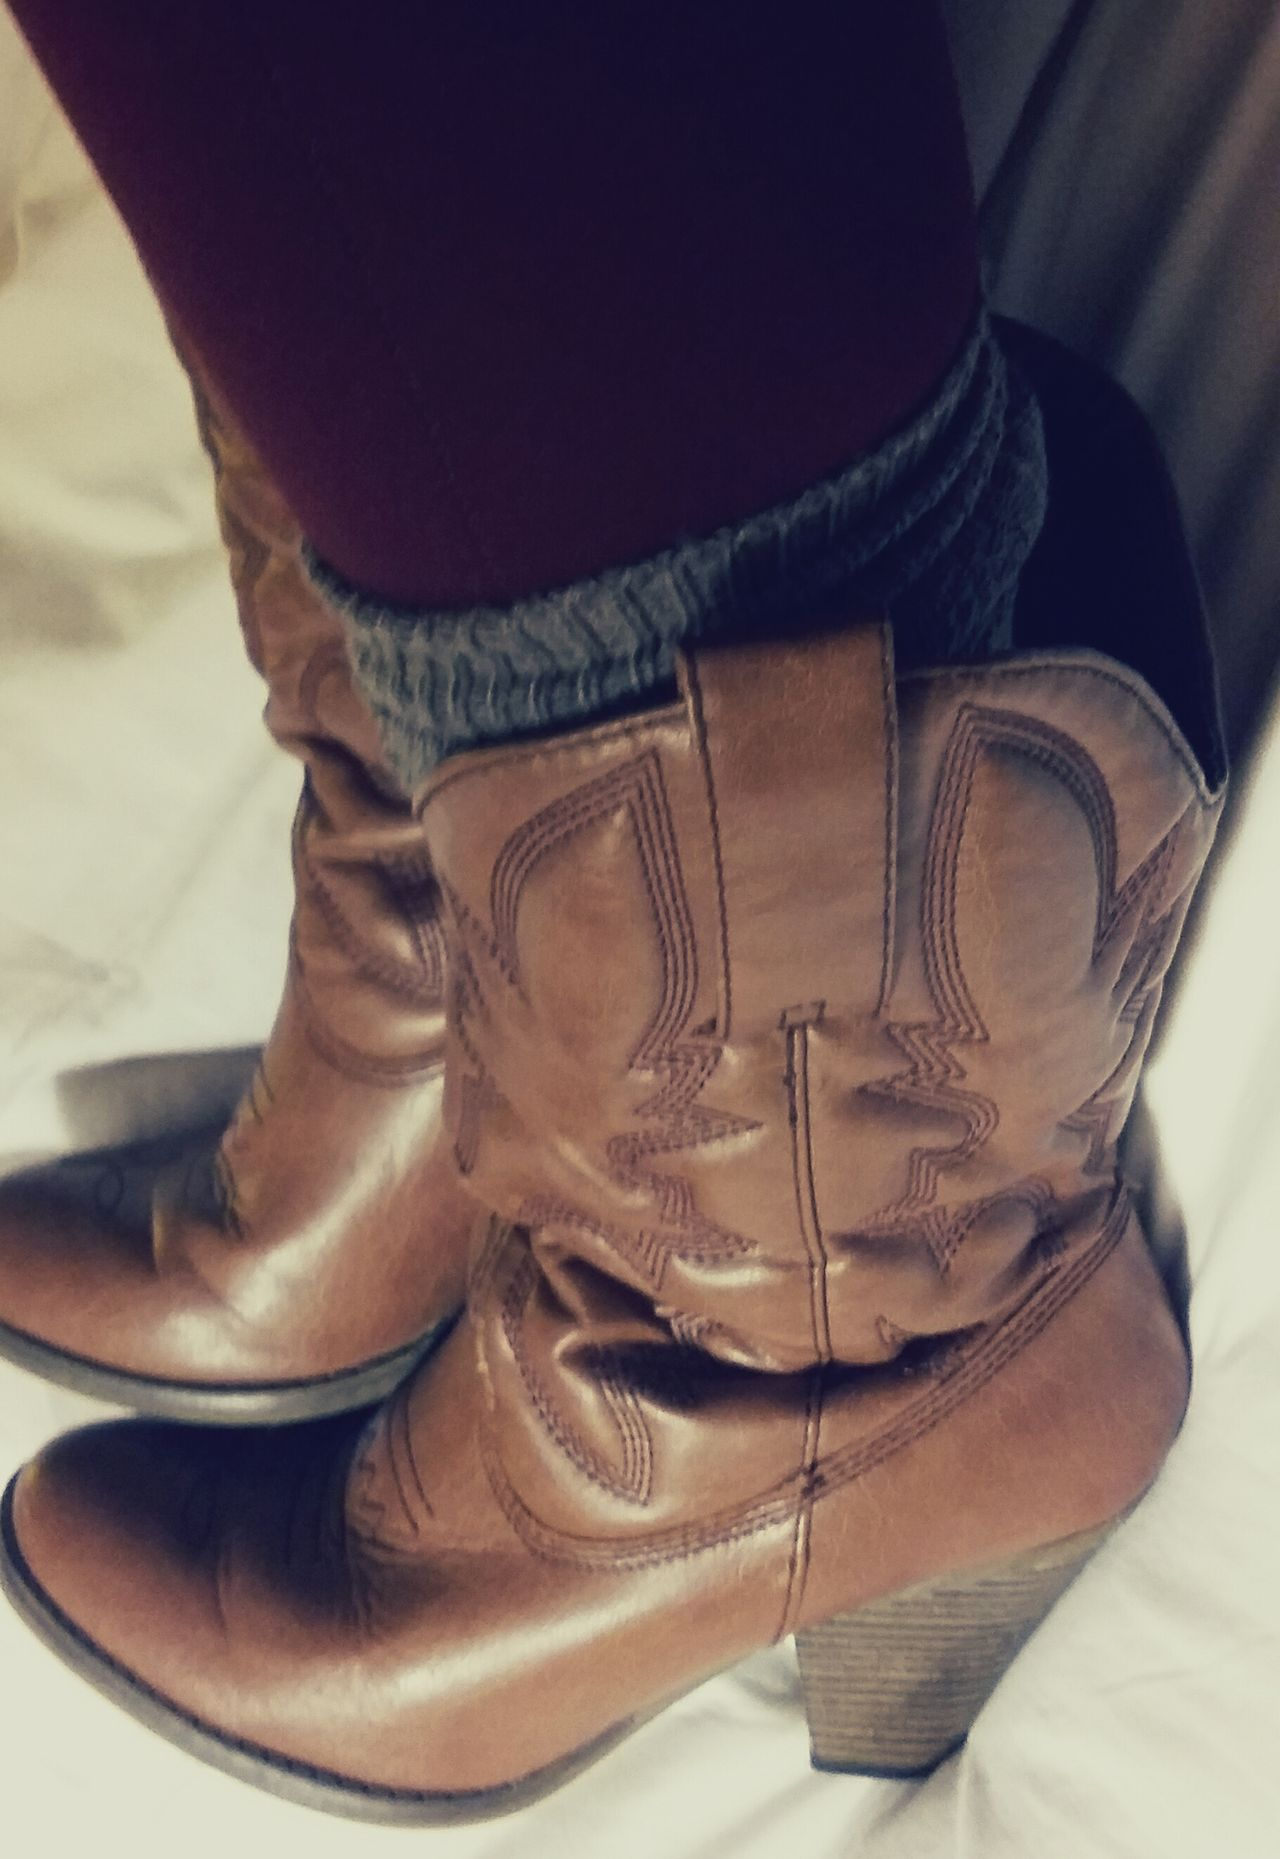 Always Be Cozy Alwaysbecozy Cozy Comfortable Boots Shoes Footwear Autumn Fall Winter Country Southern Fashion Style Female Warm